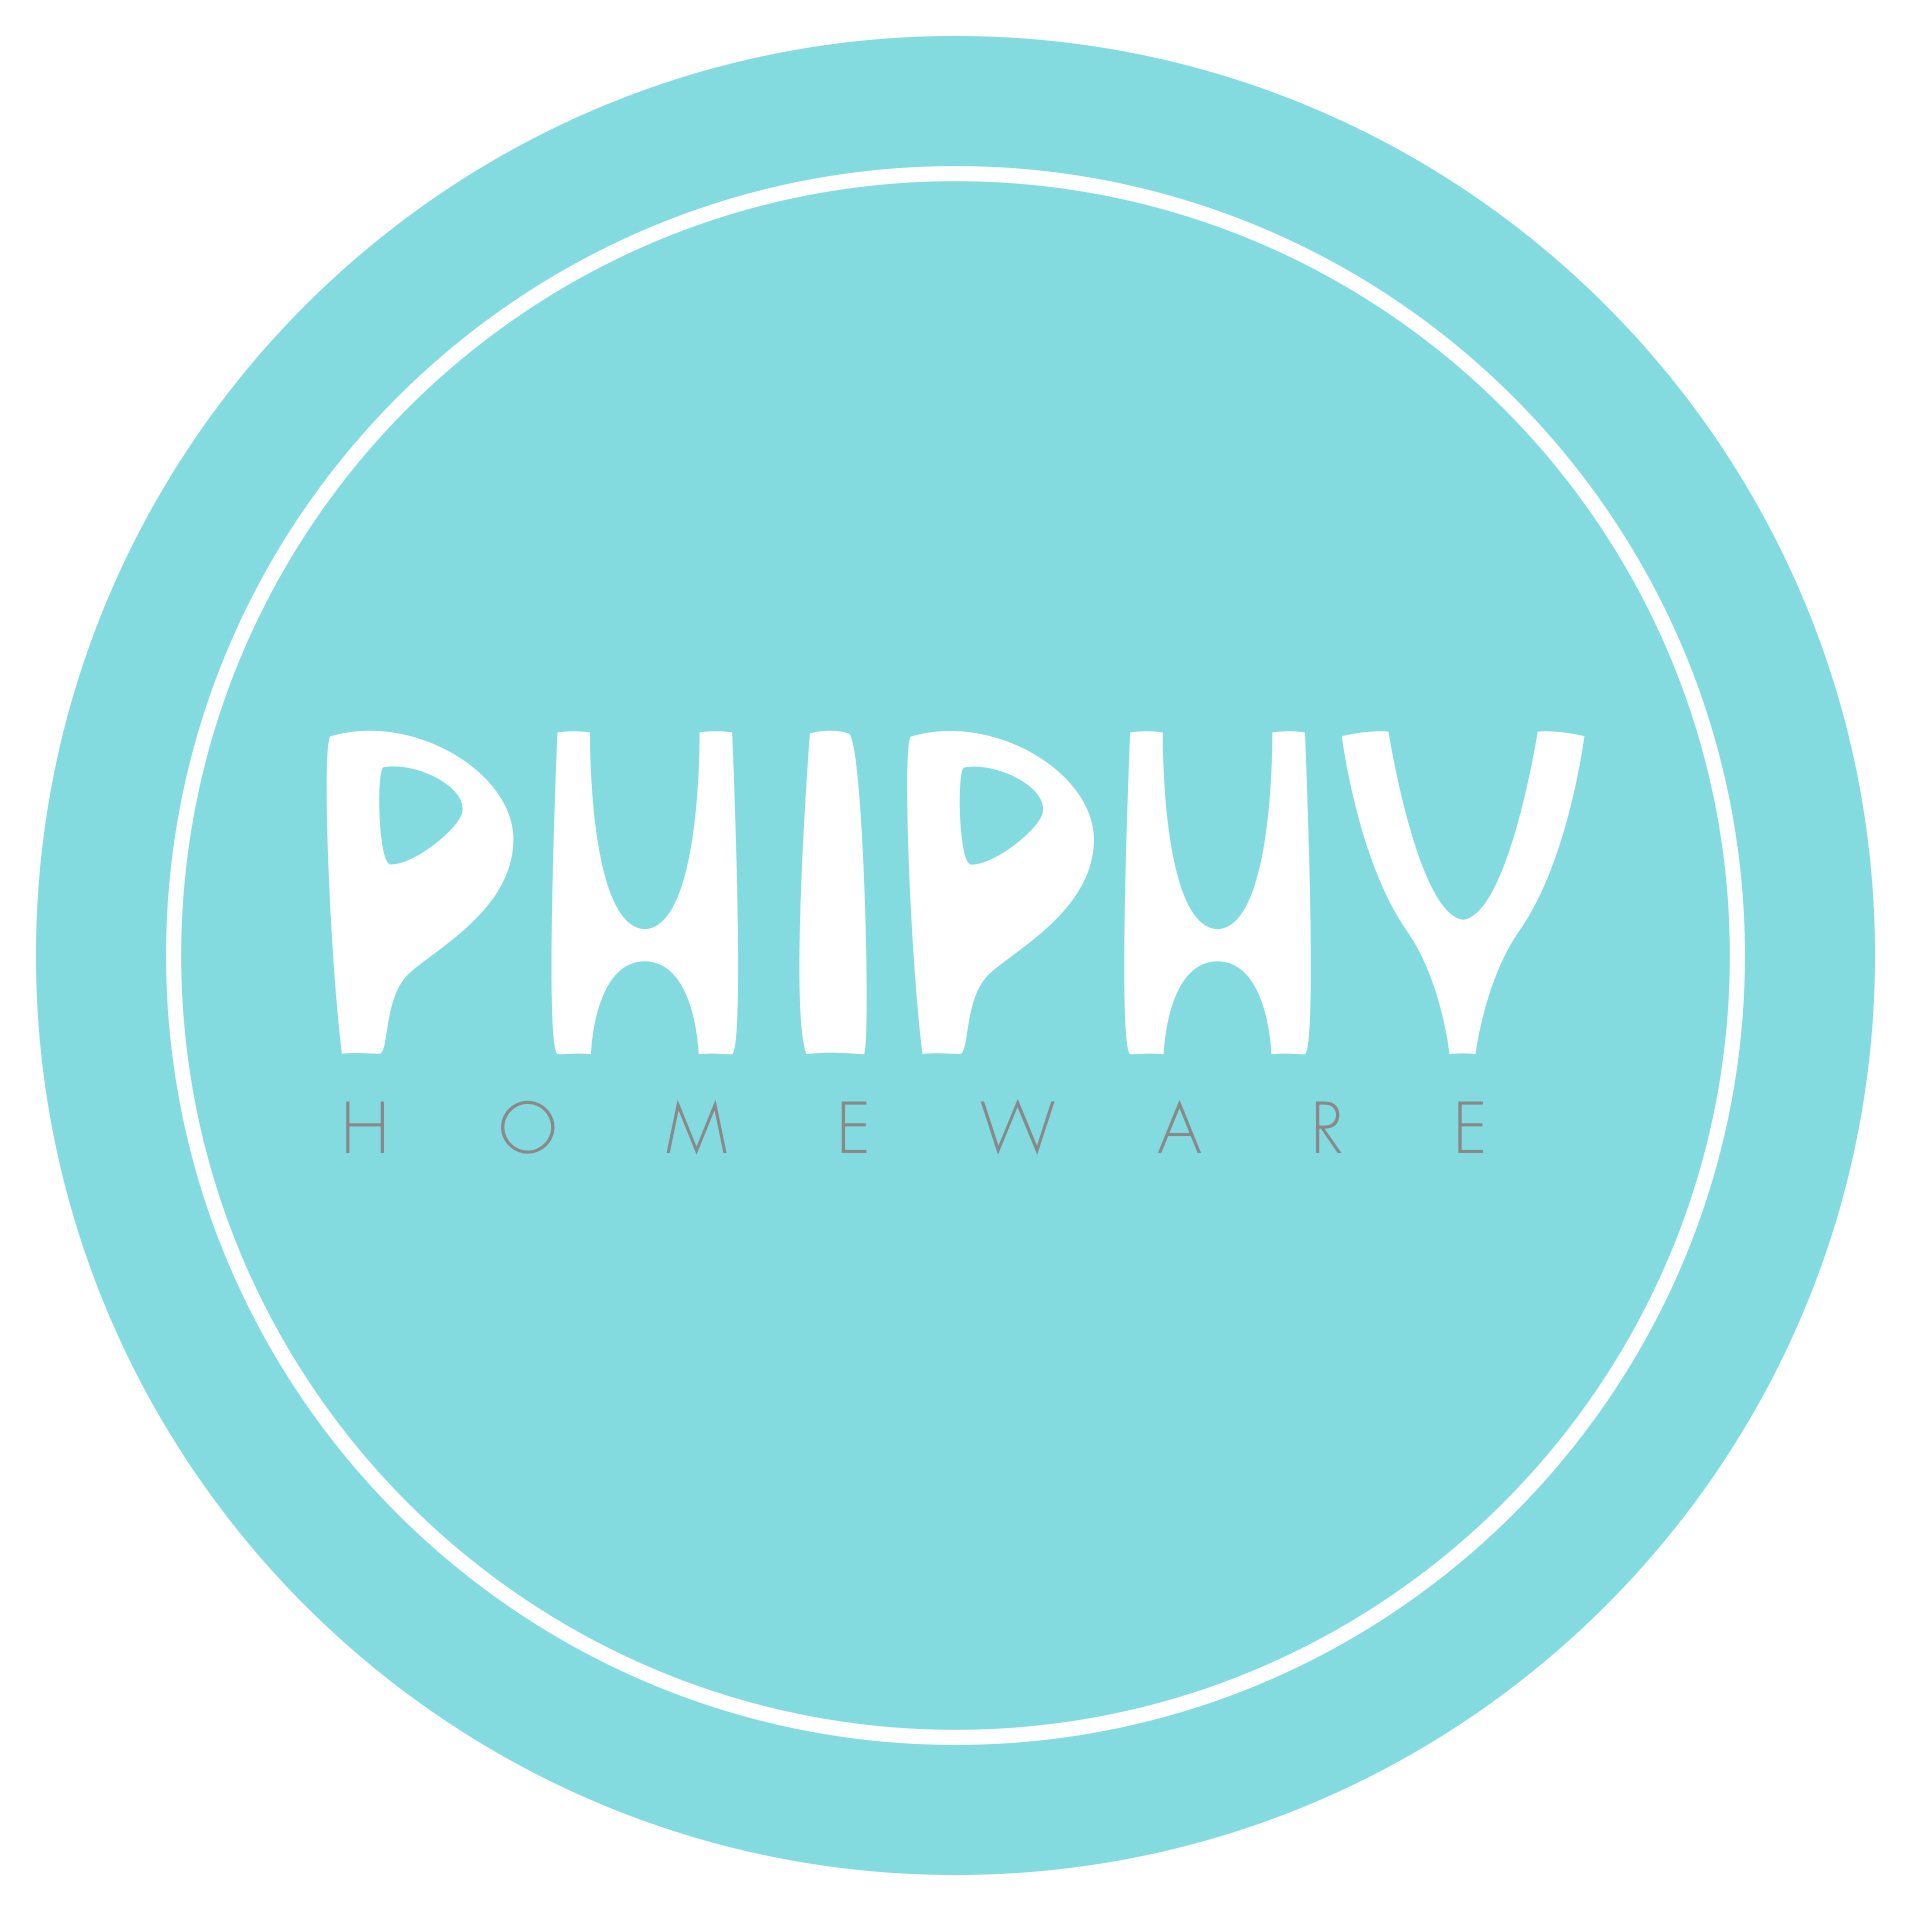 PHILOSOPHY HOME LIMITED